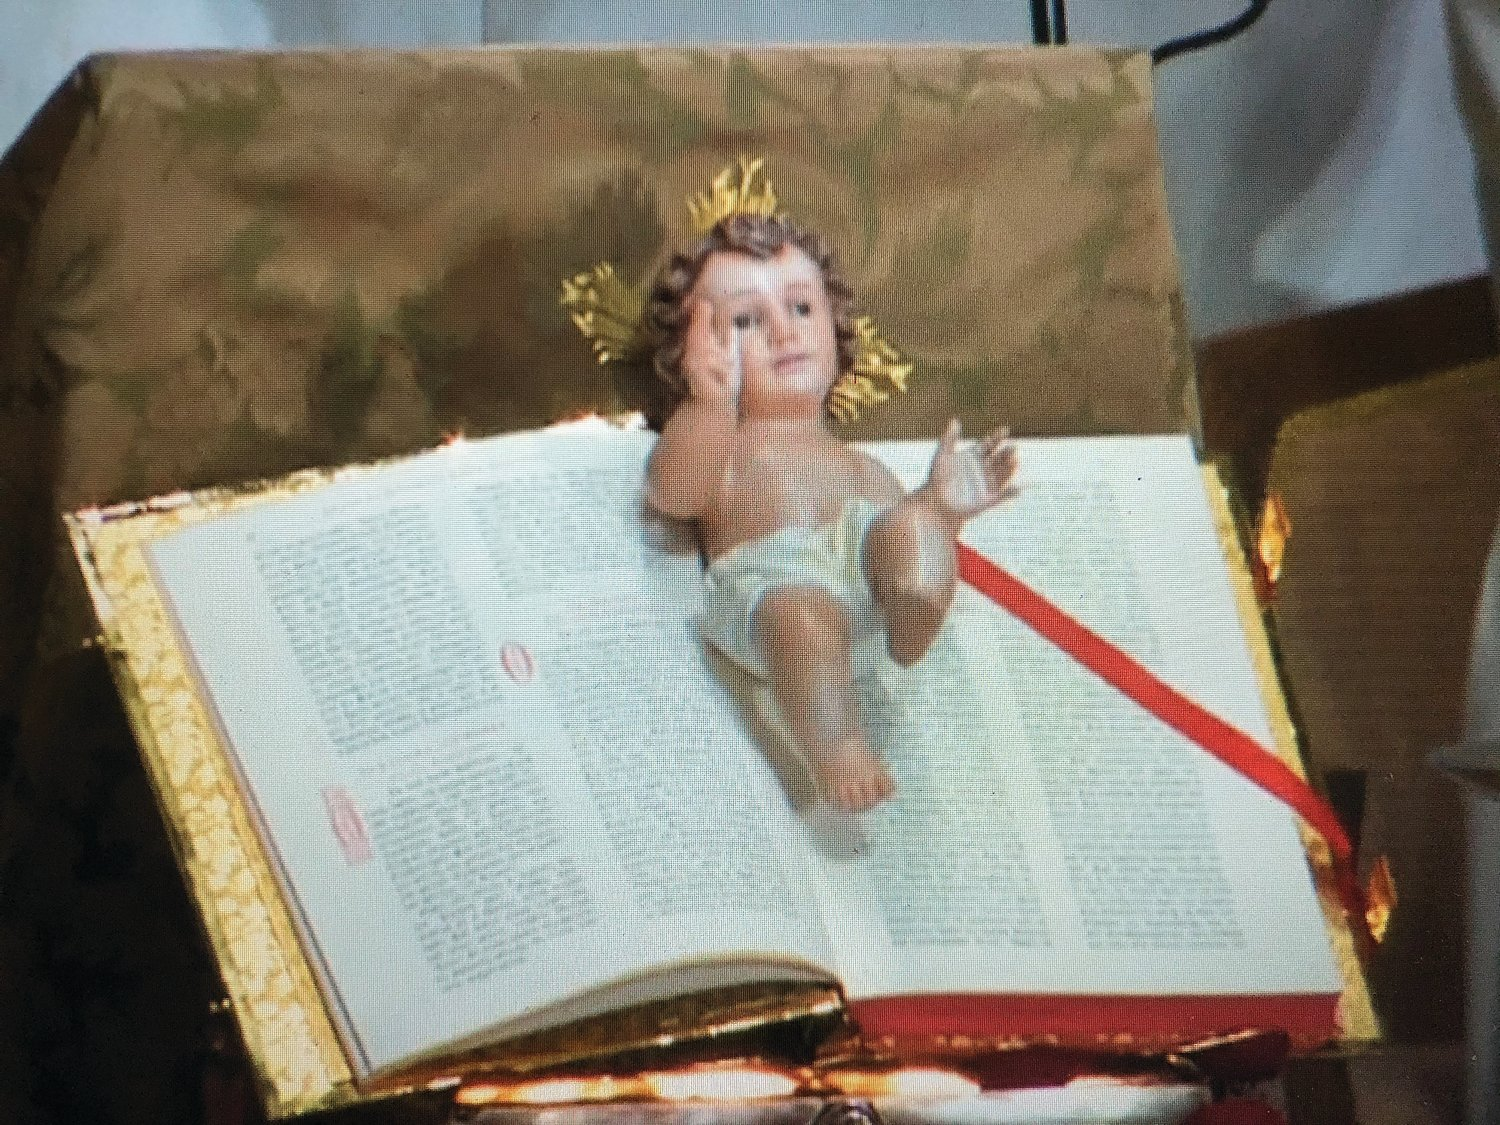 A figurine of the baby Jesus on Christmas morning.